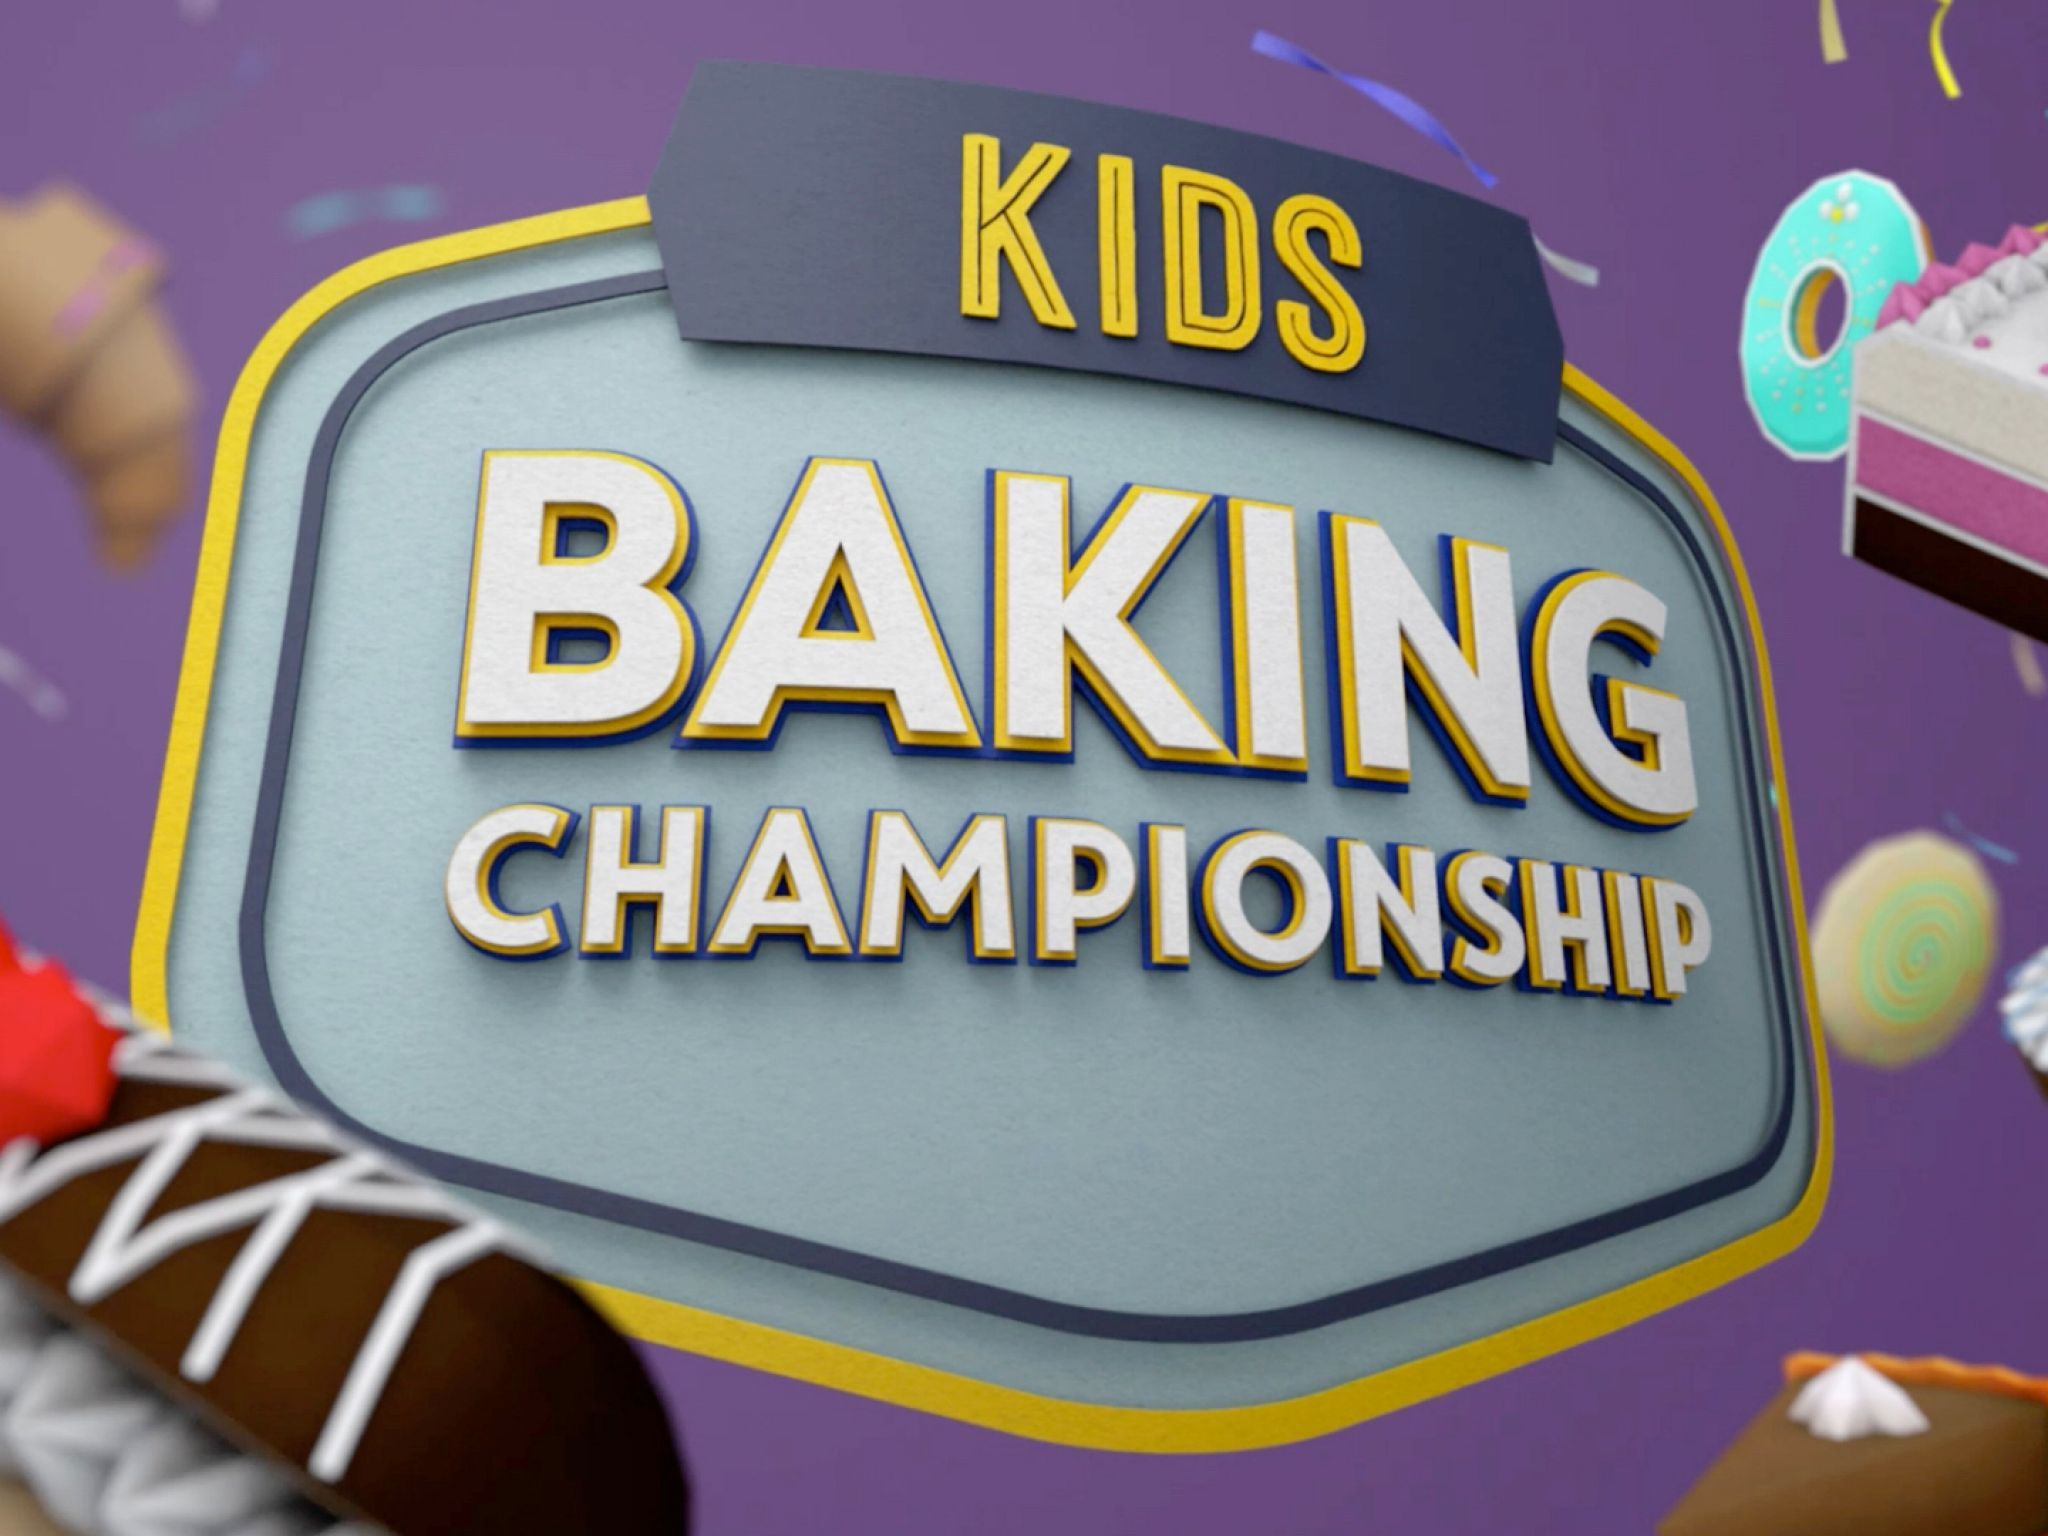 Get full episodes, clips, and recipes from Kids Baking